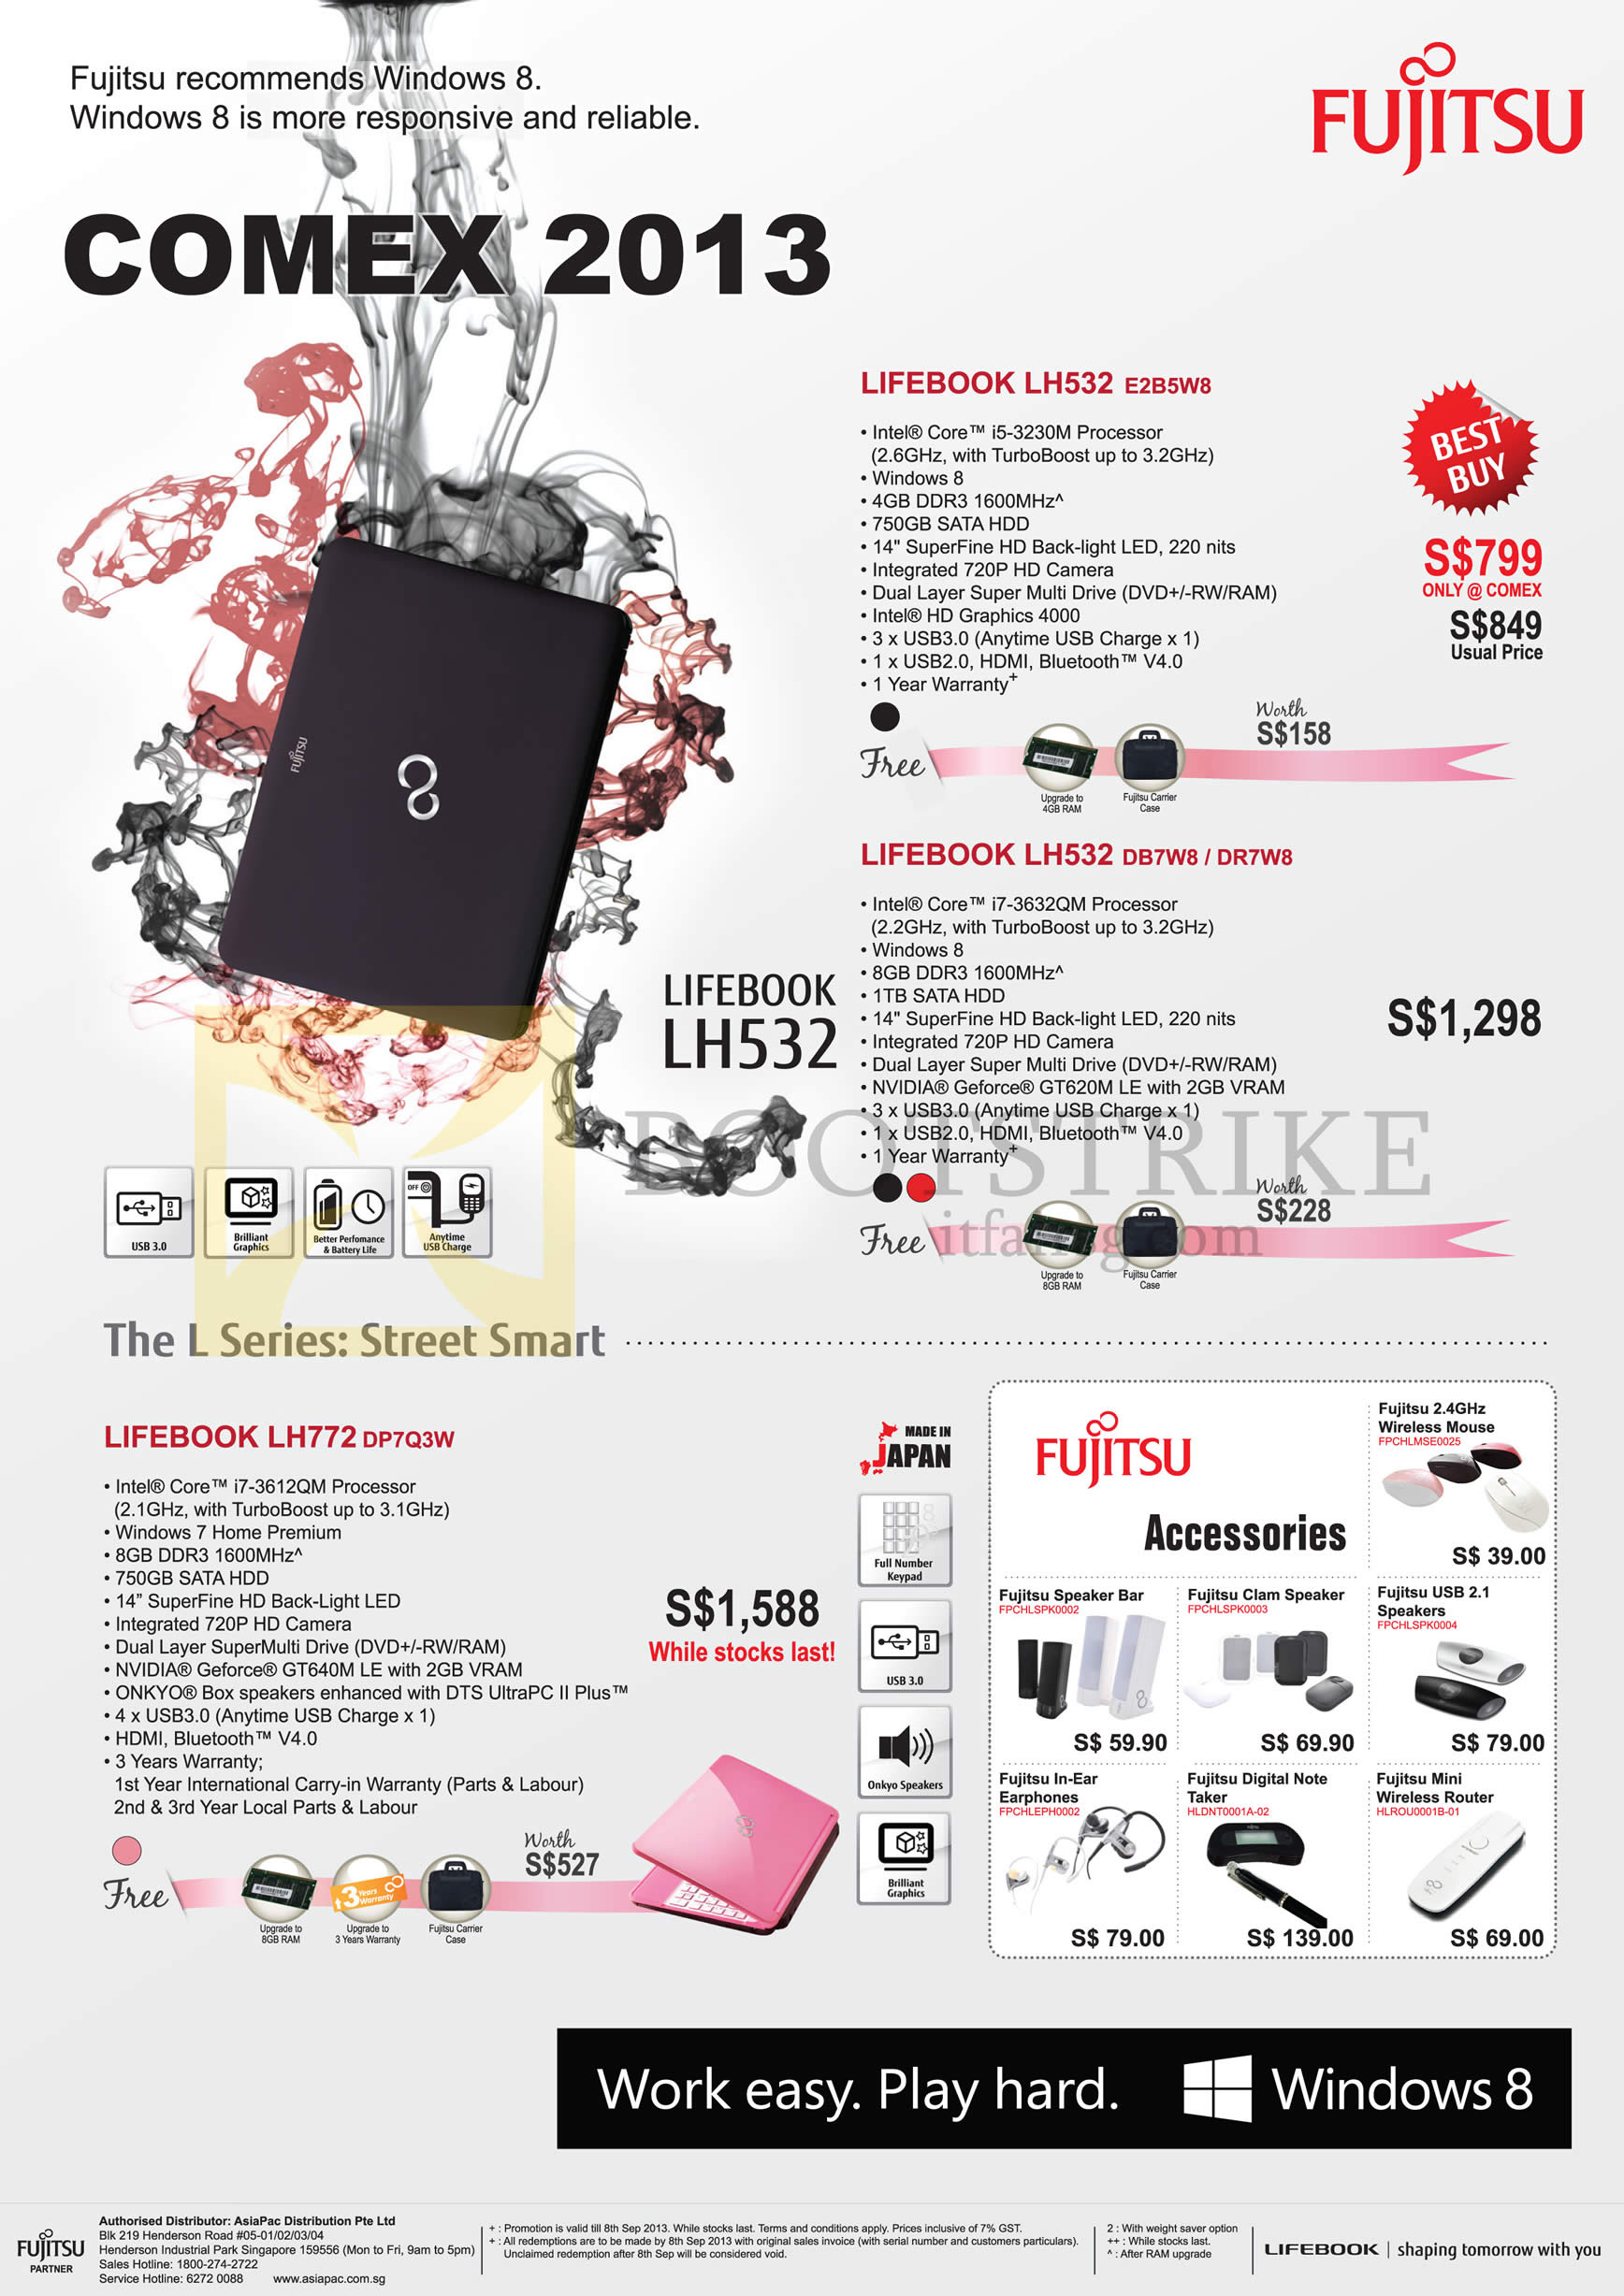 COMEX 2013 price list image brochure of Fujitsu Newstead Notebooks Lifebook LH532 E2B5W8 DB7W8 DR7W8, LH772 DP7Q3W